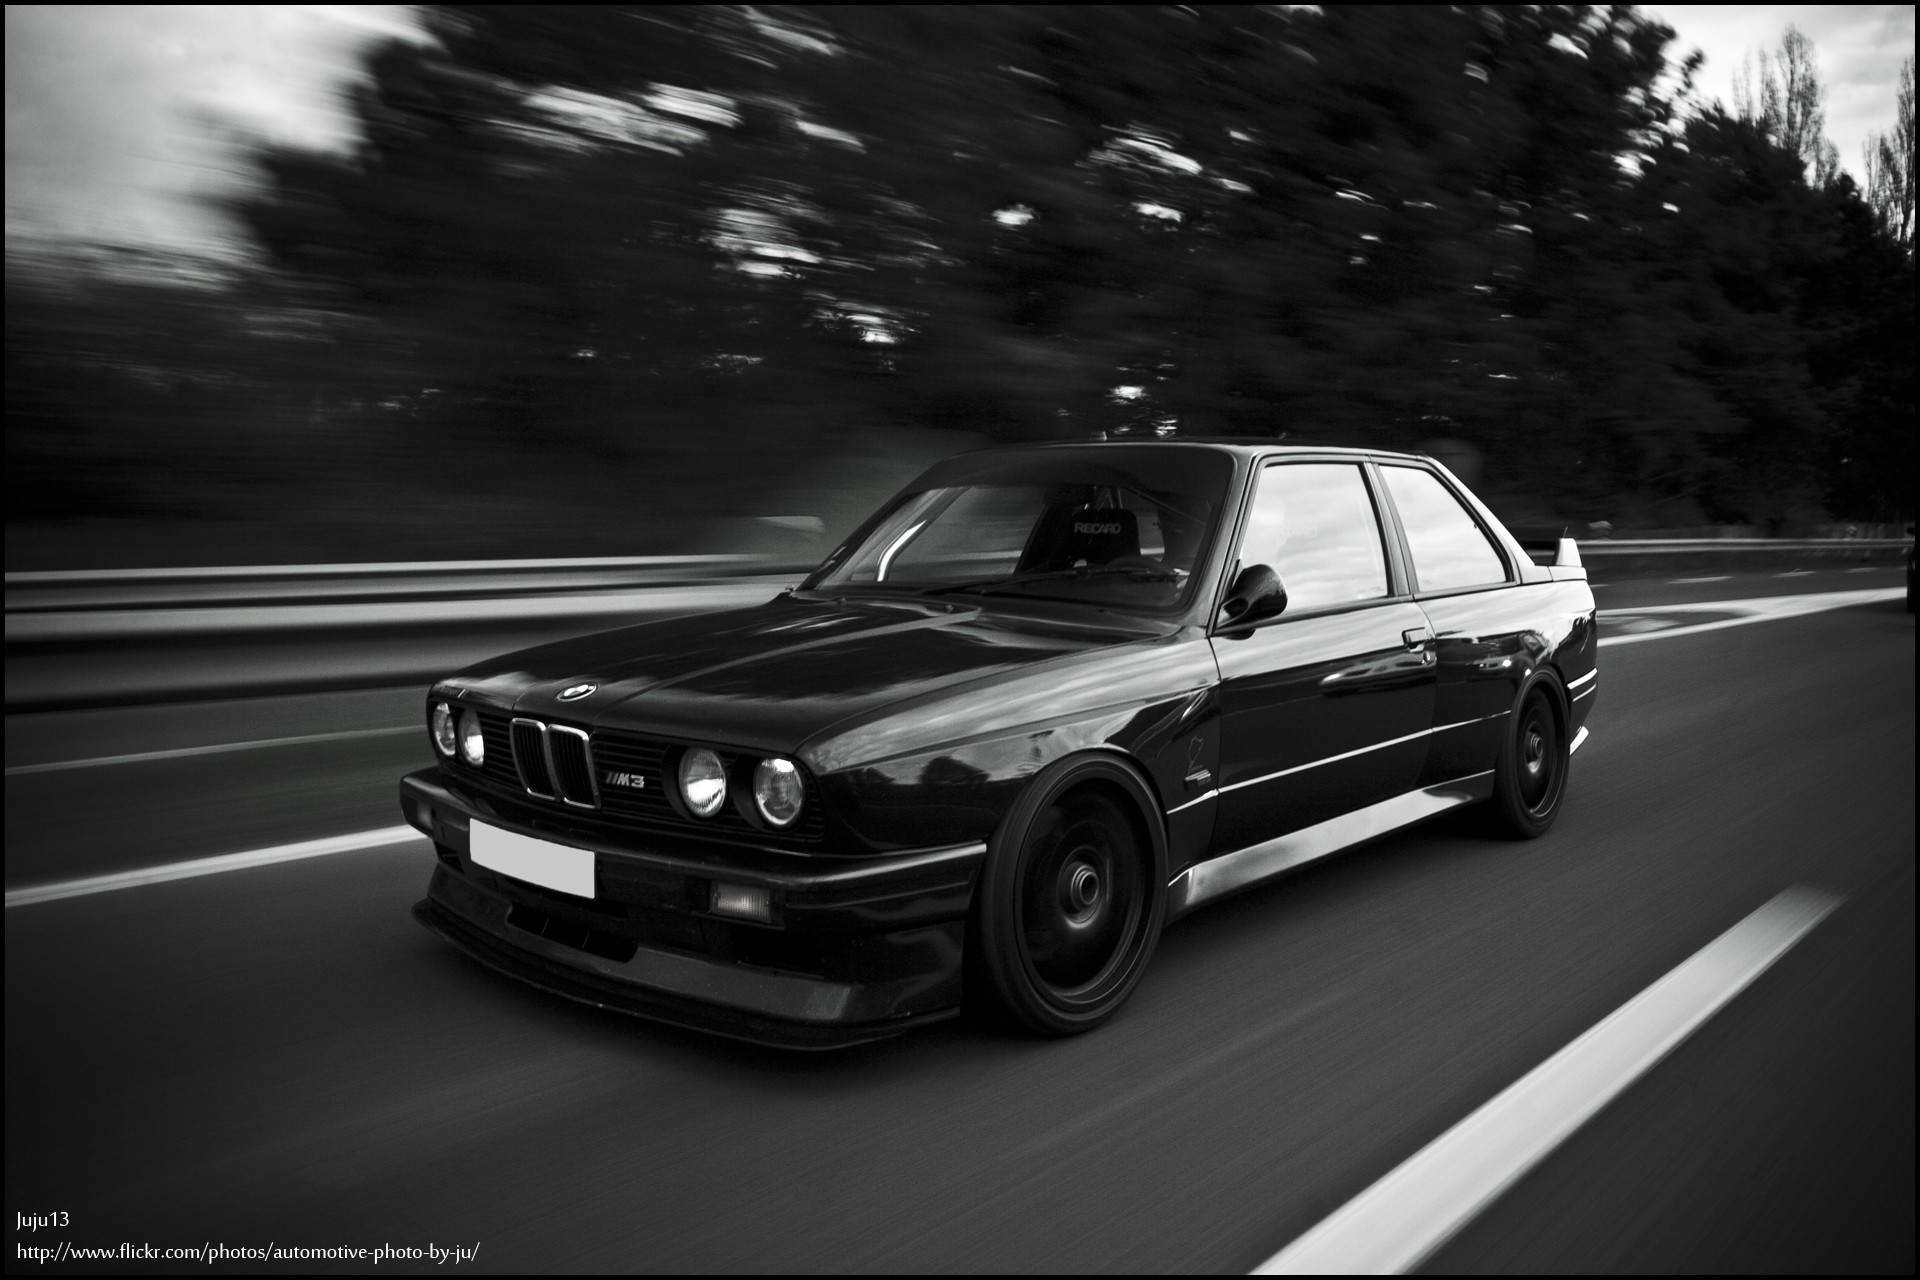 bmw e30 touring silhouette - photo #8